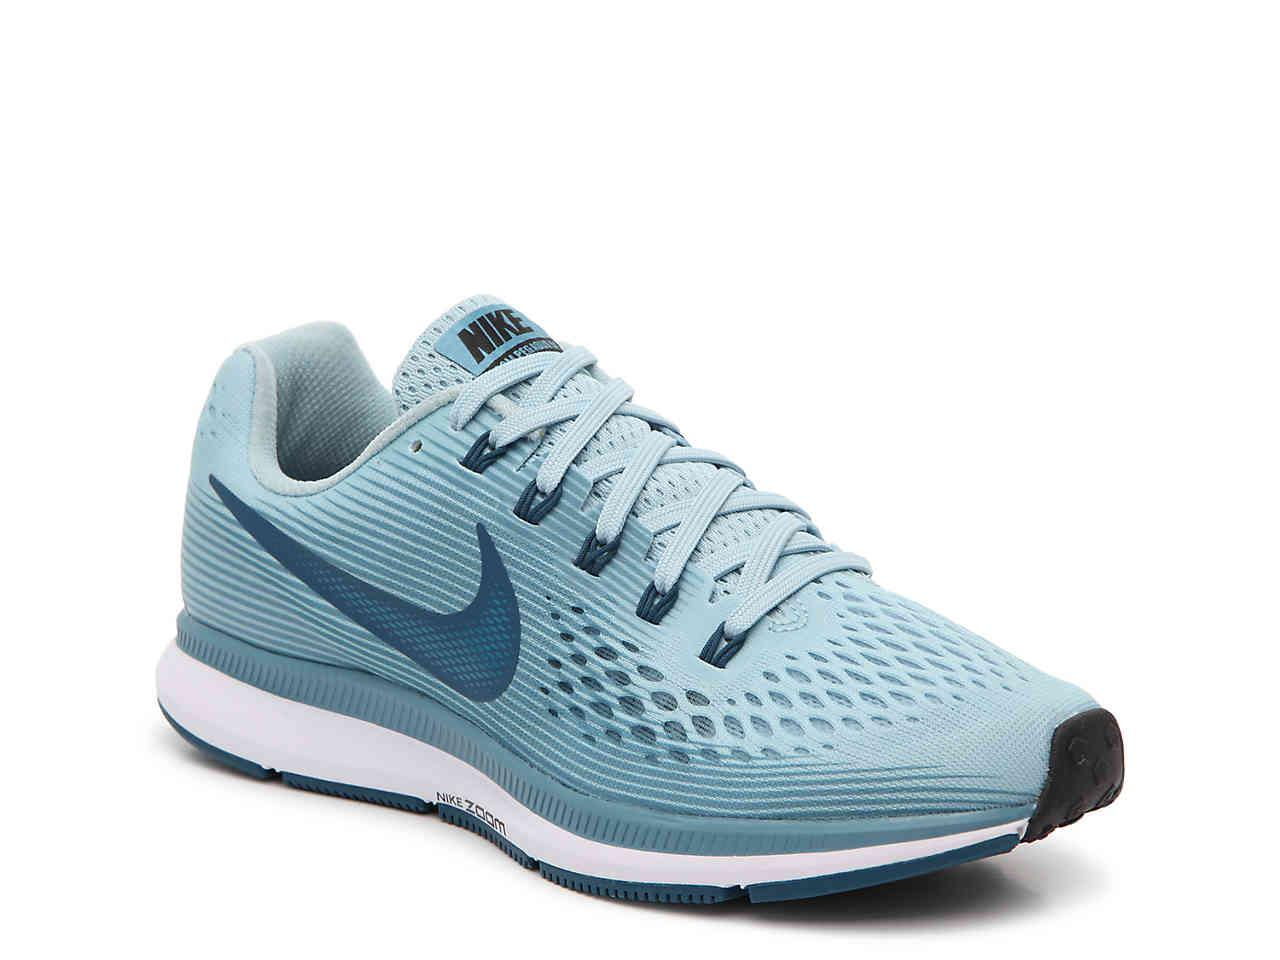 Lyst - Nike Women s Air Zoom Pegasus 34 Running Shoe in Blue 4d3b9d2b01